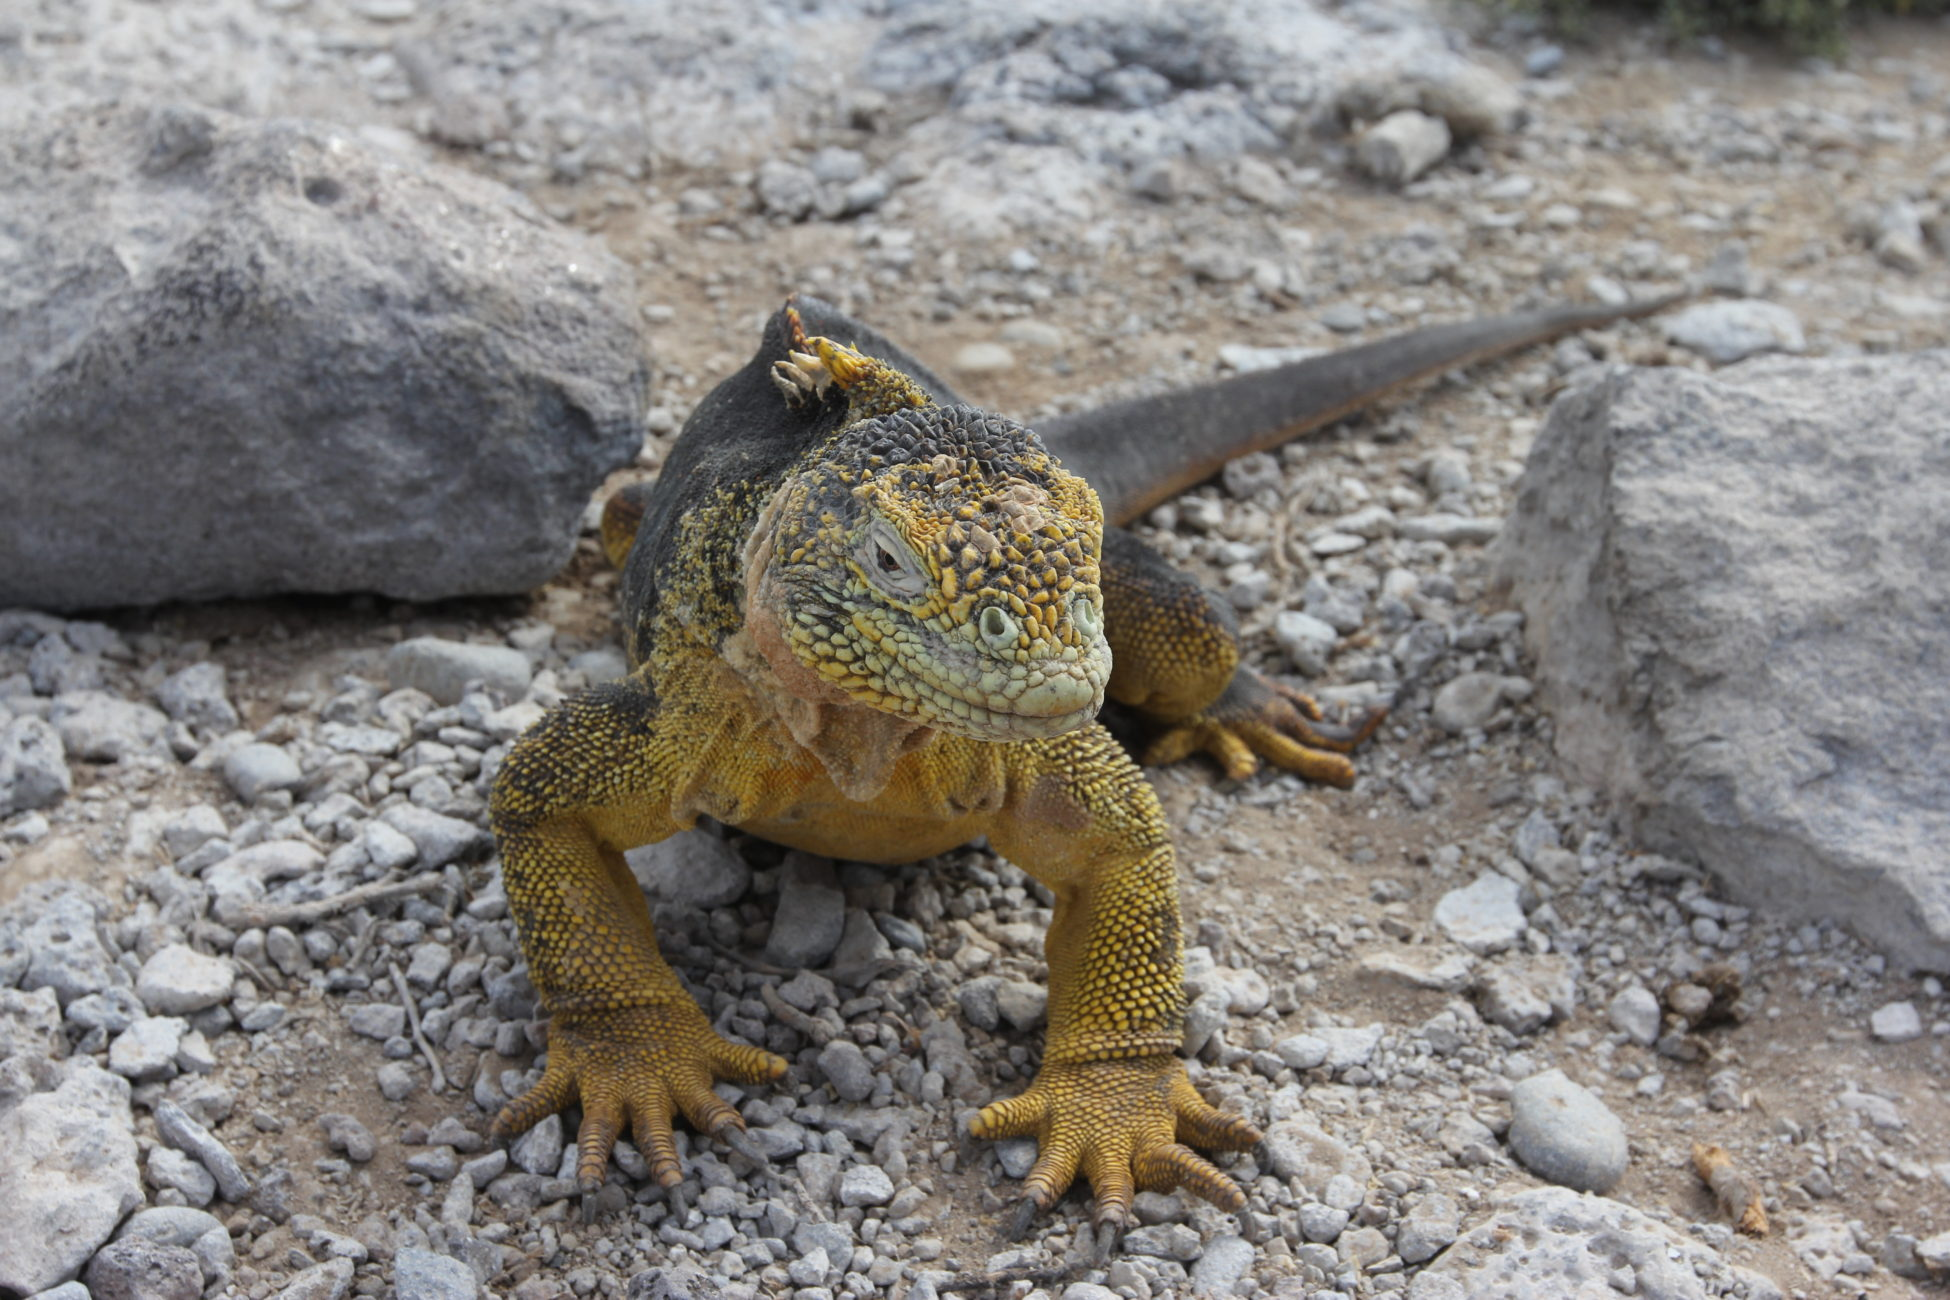 Portrait of a Galápagos land iguana